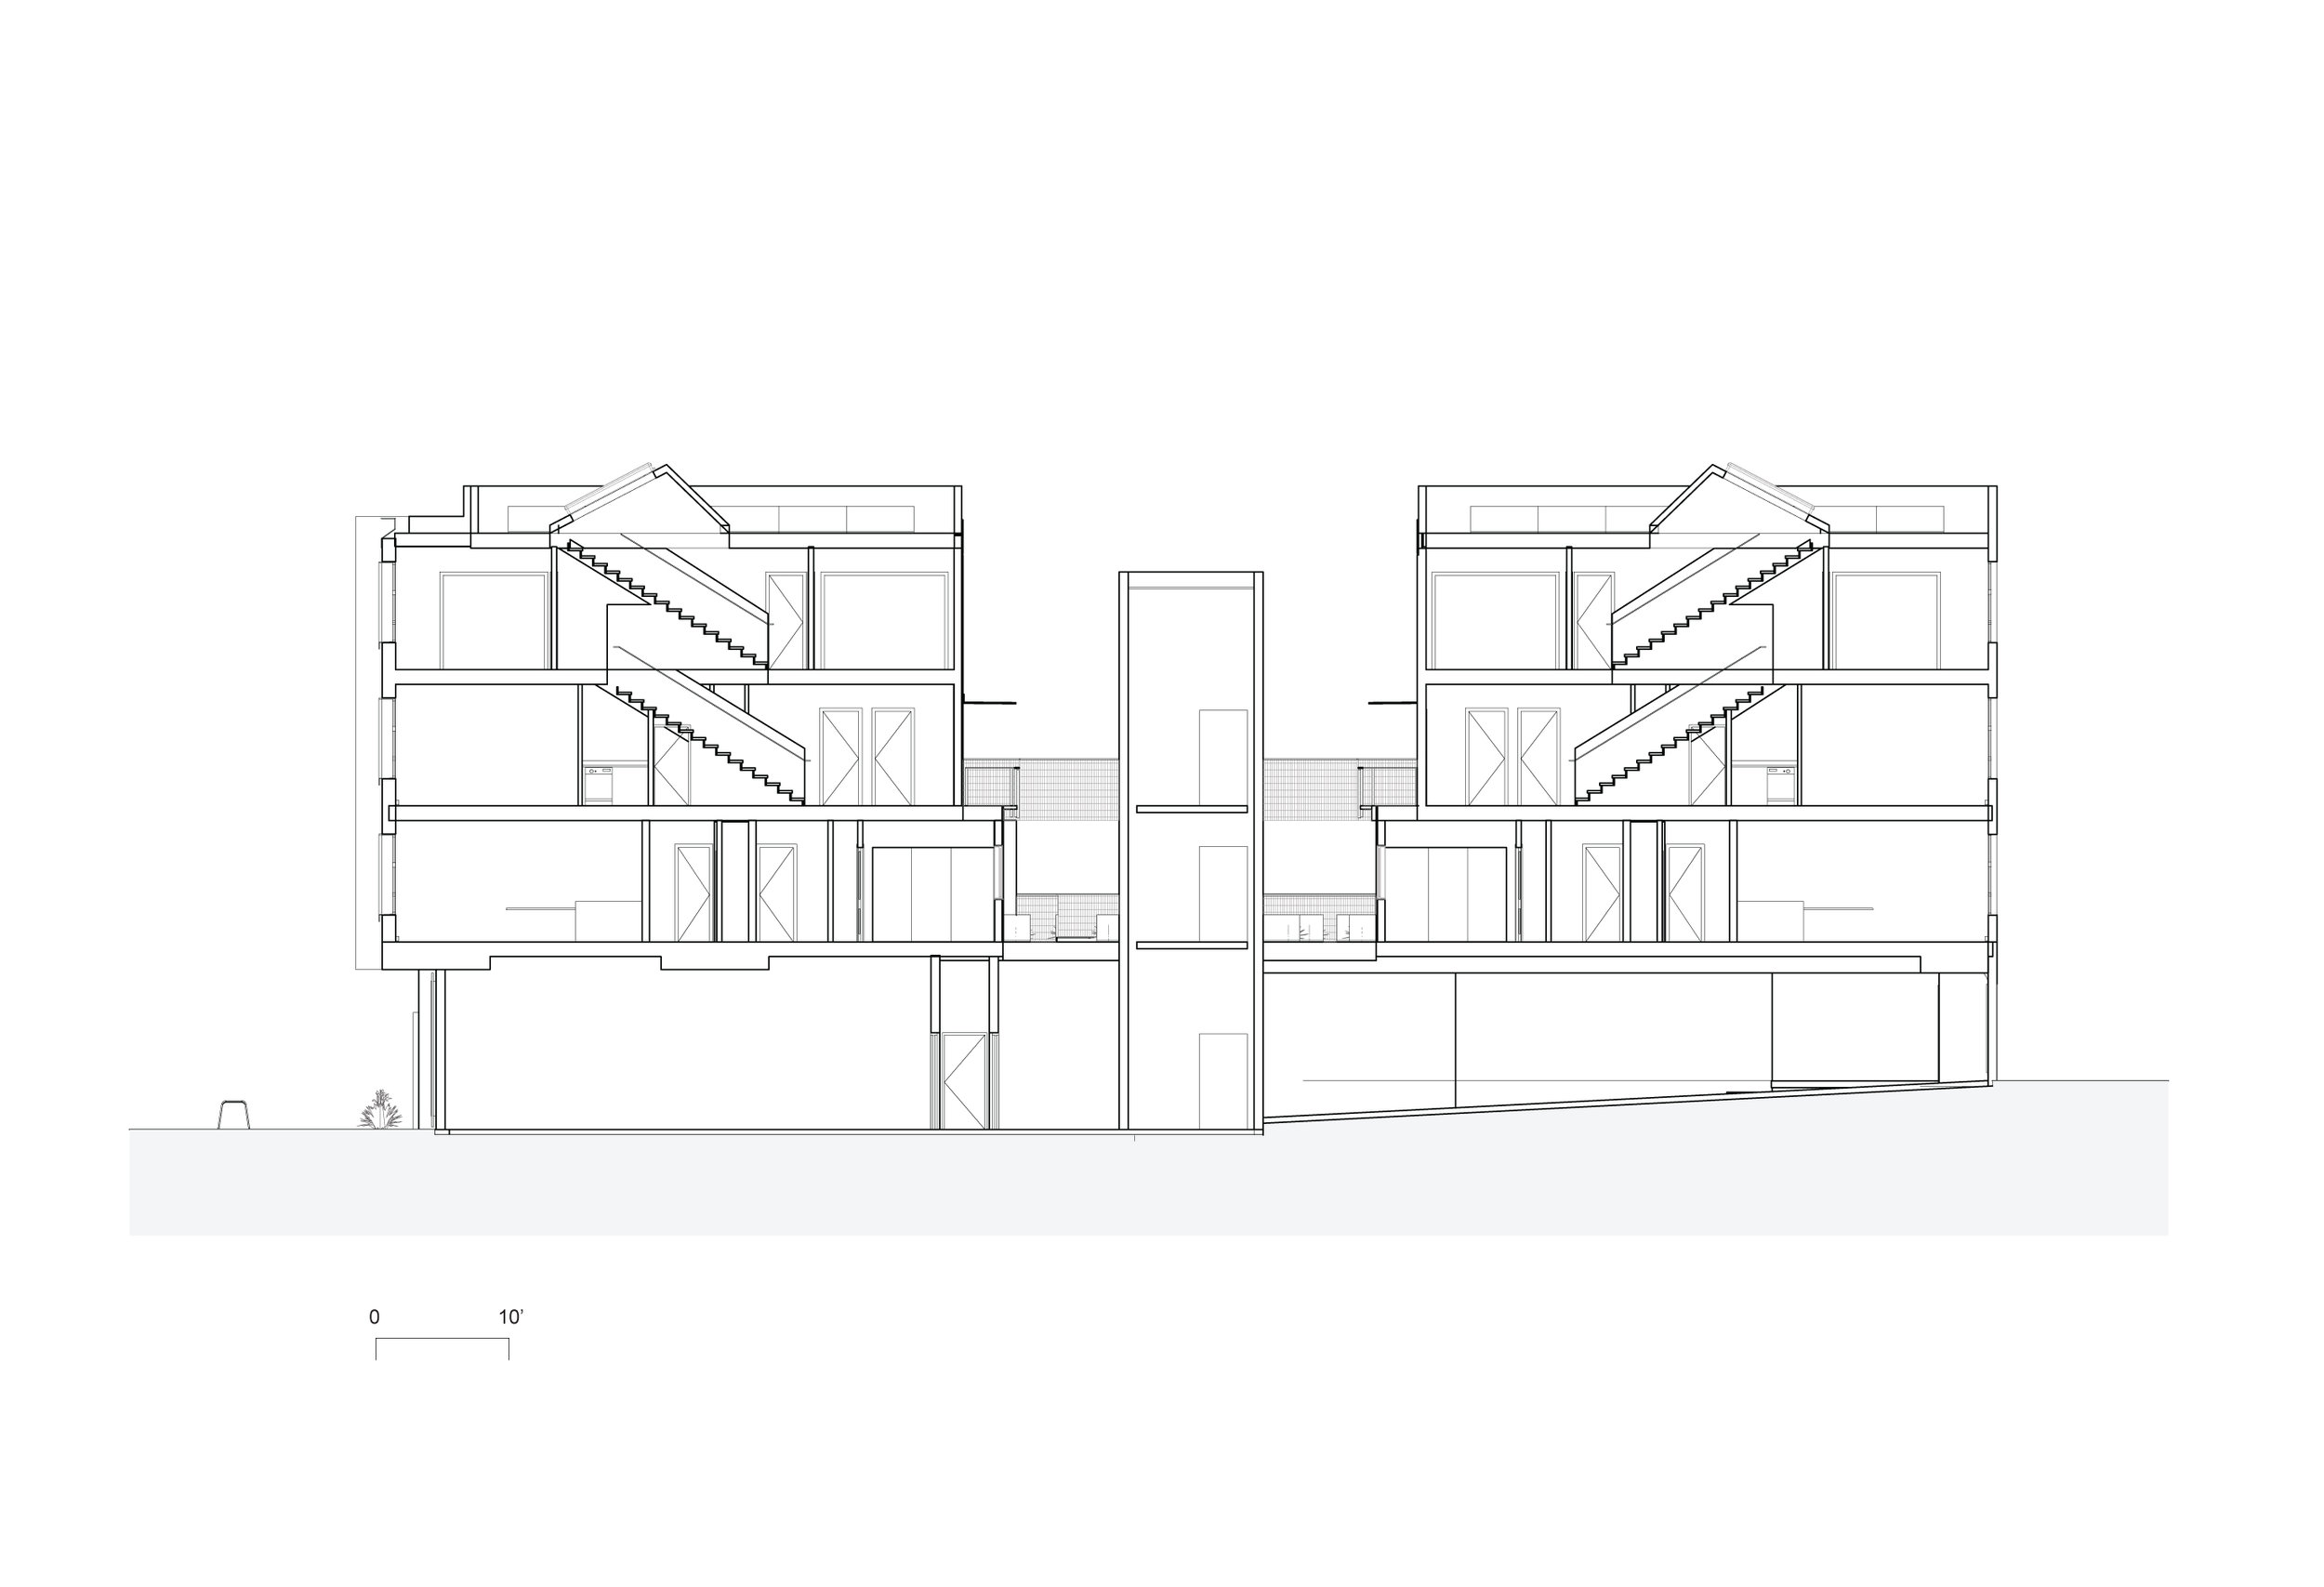 626 Alexander St_LONG SECTION_No Trees.jpg